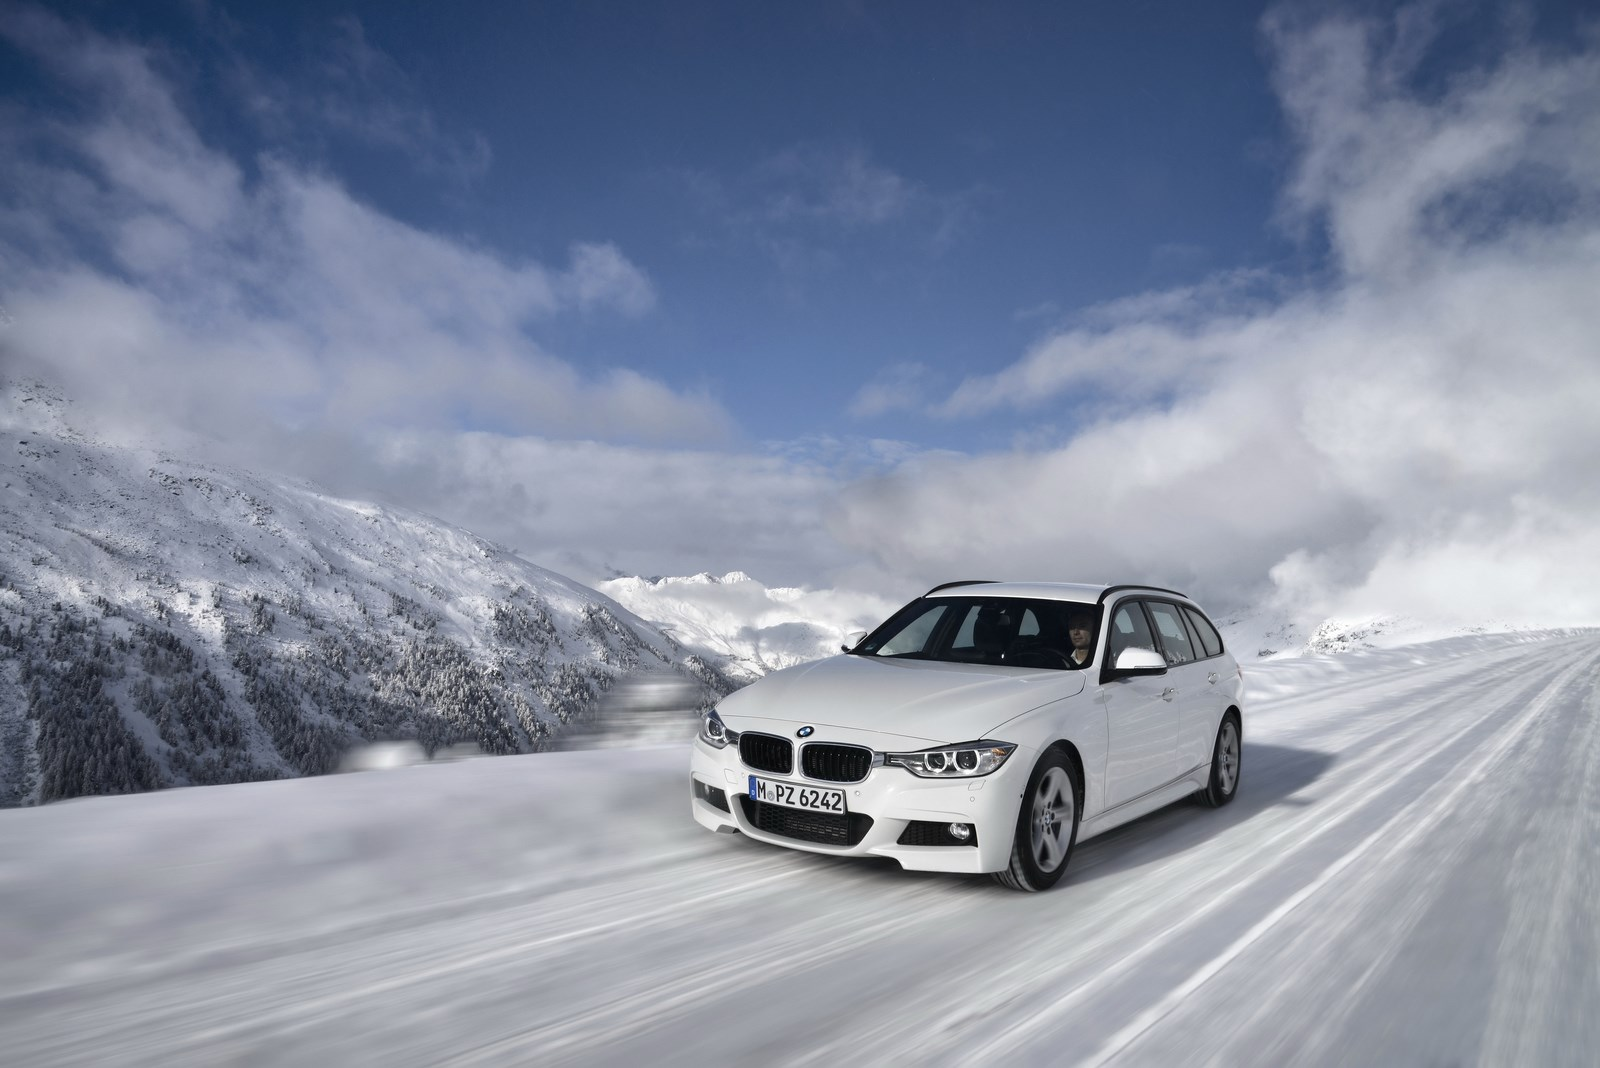 BMW 3 series 325d 2013 photo - 7